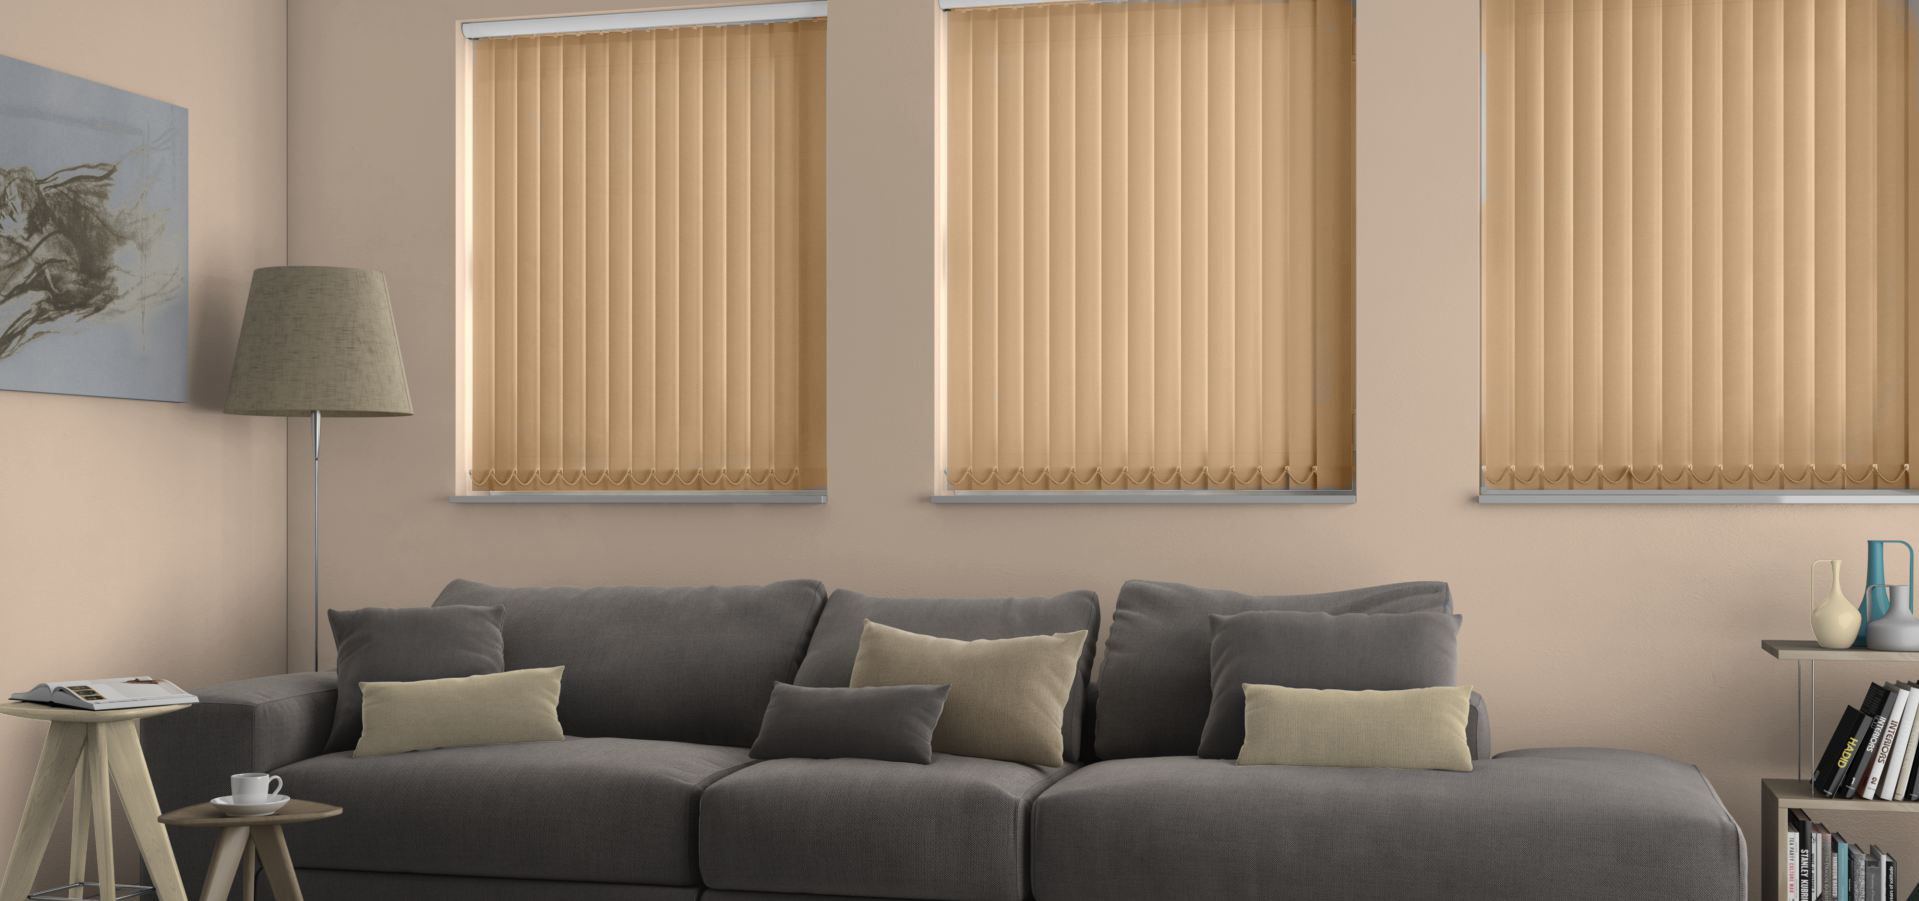 Polaris Barley Vertical blinds in a lounge